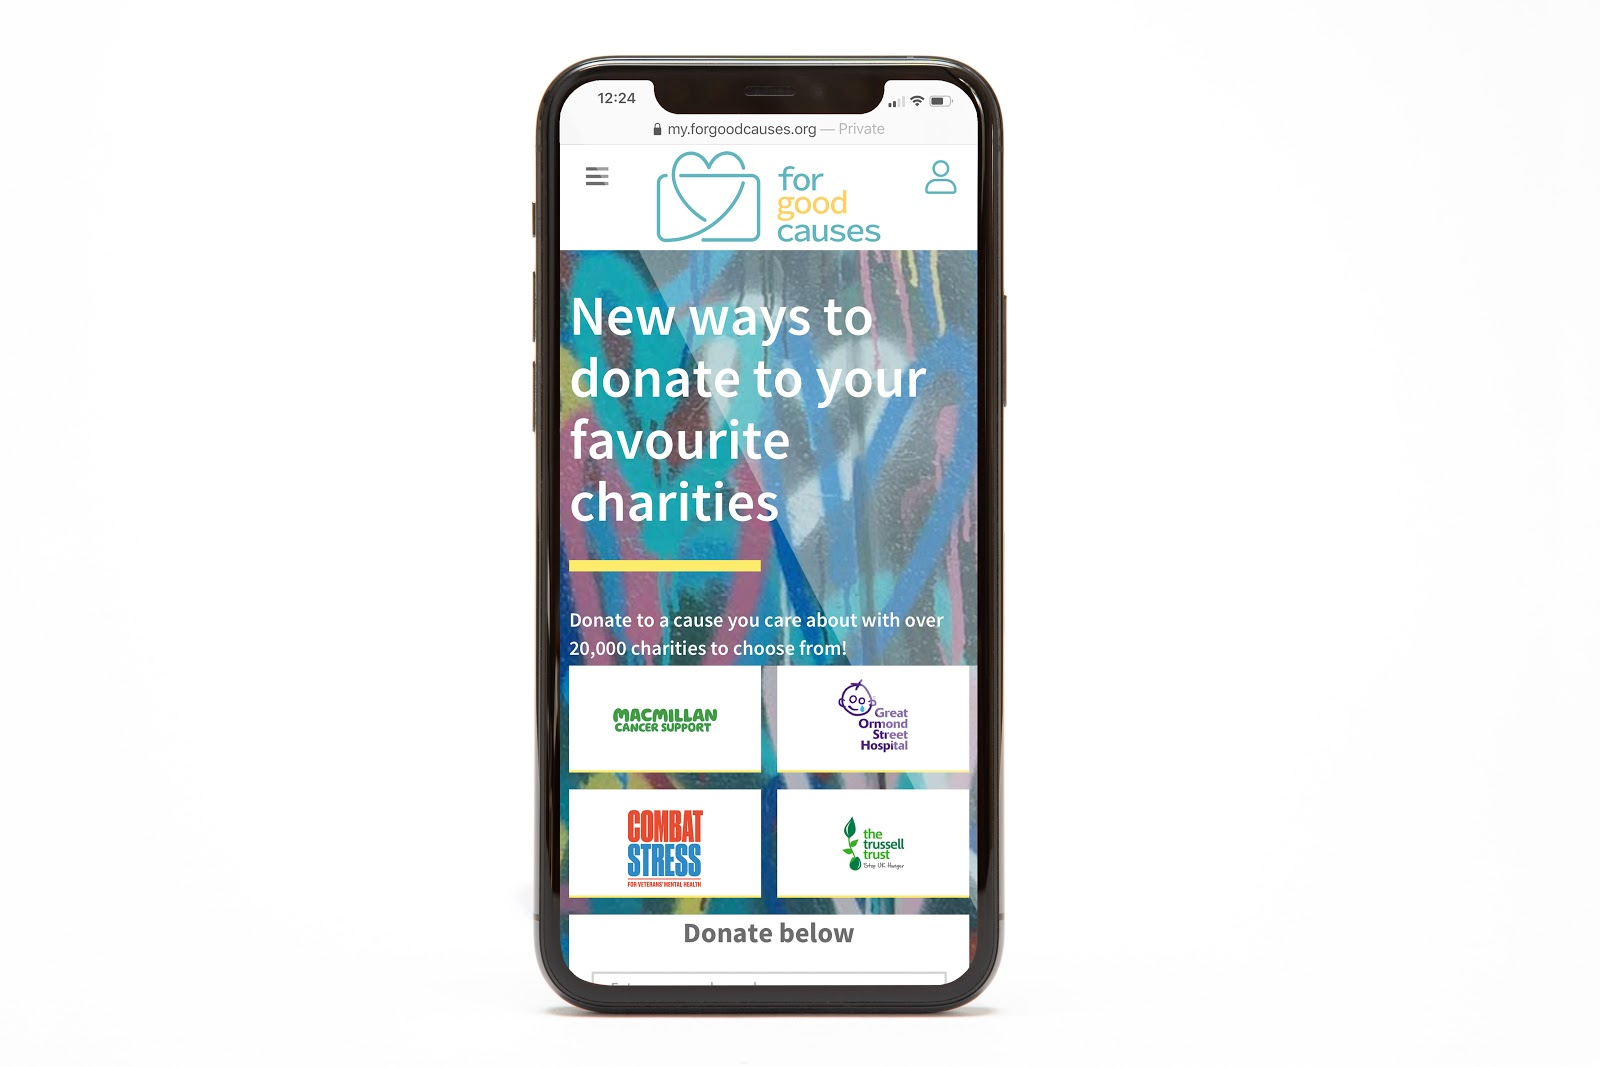 With over 20,000 charities to choose from, users can donate points for causes they care about.